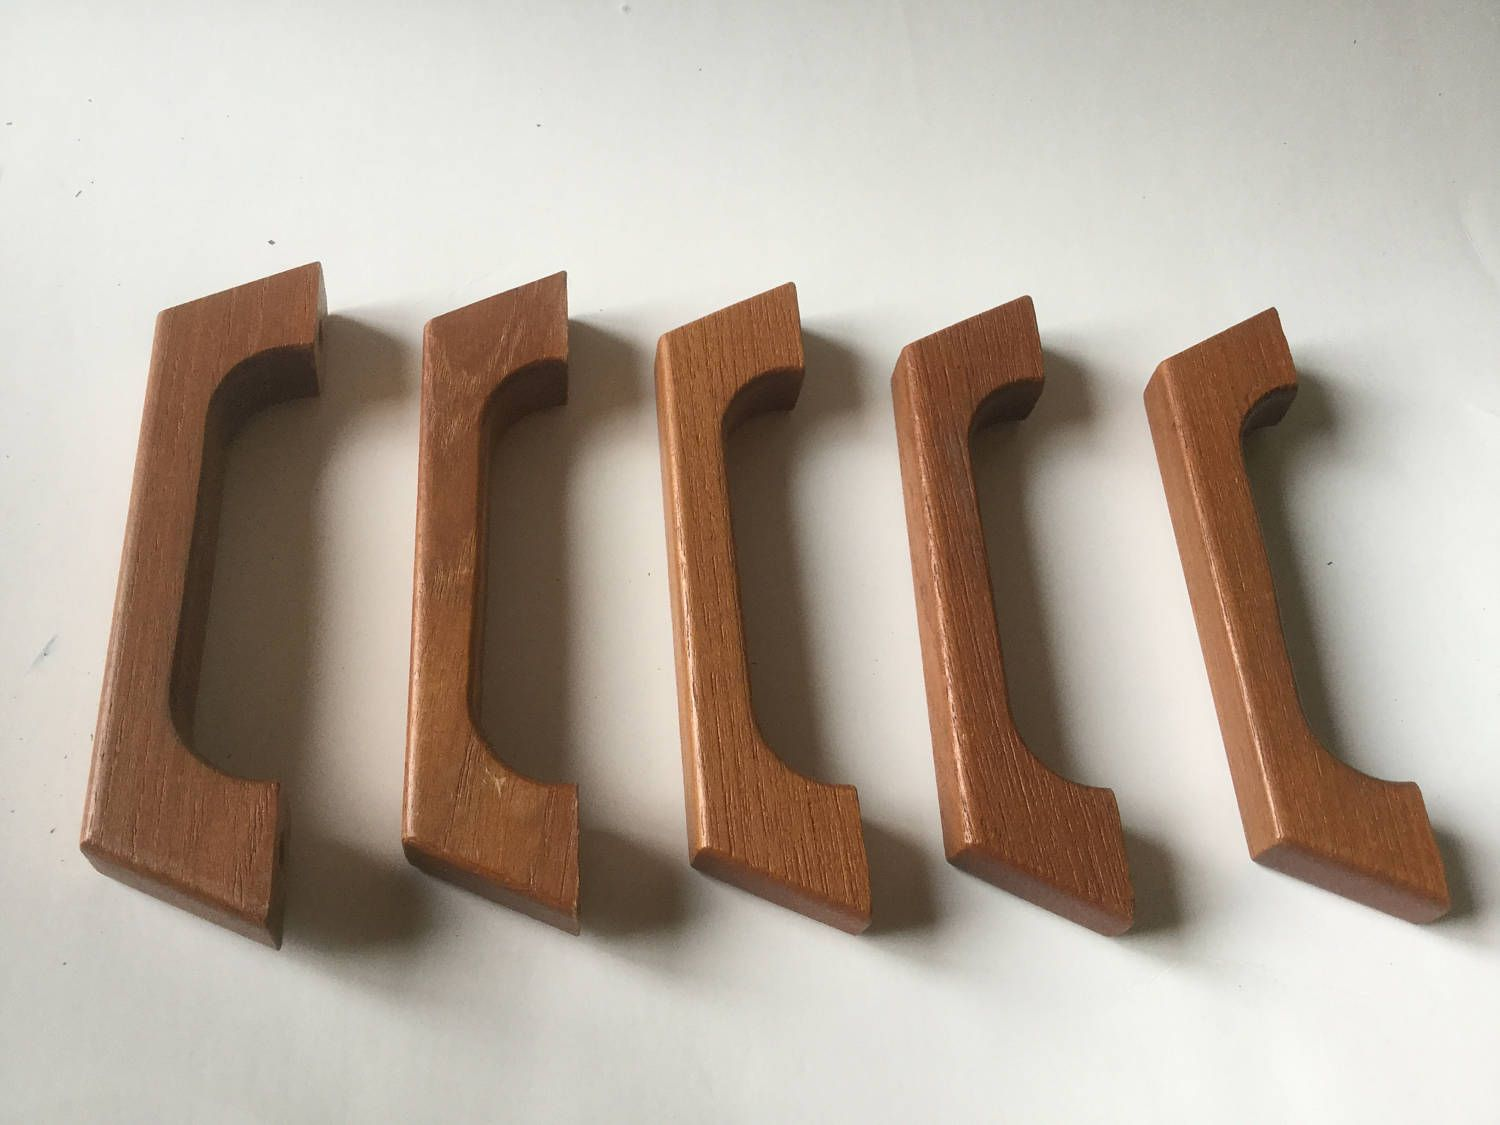 Luxury Arts and Crafts Cabinet Pulls